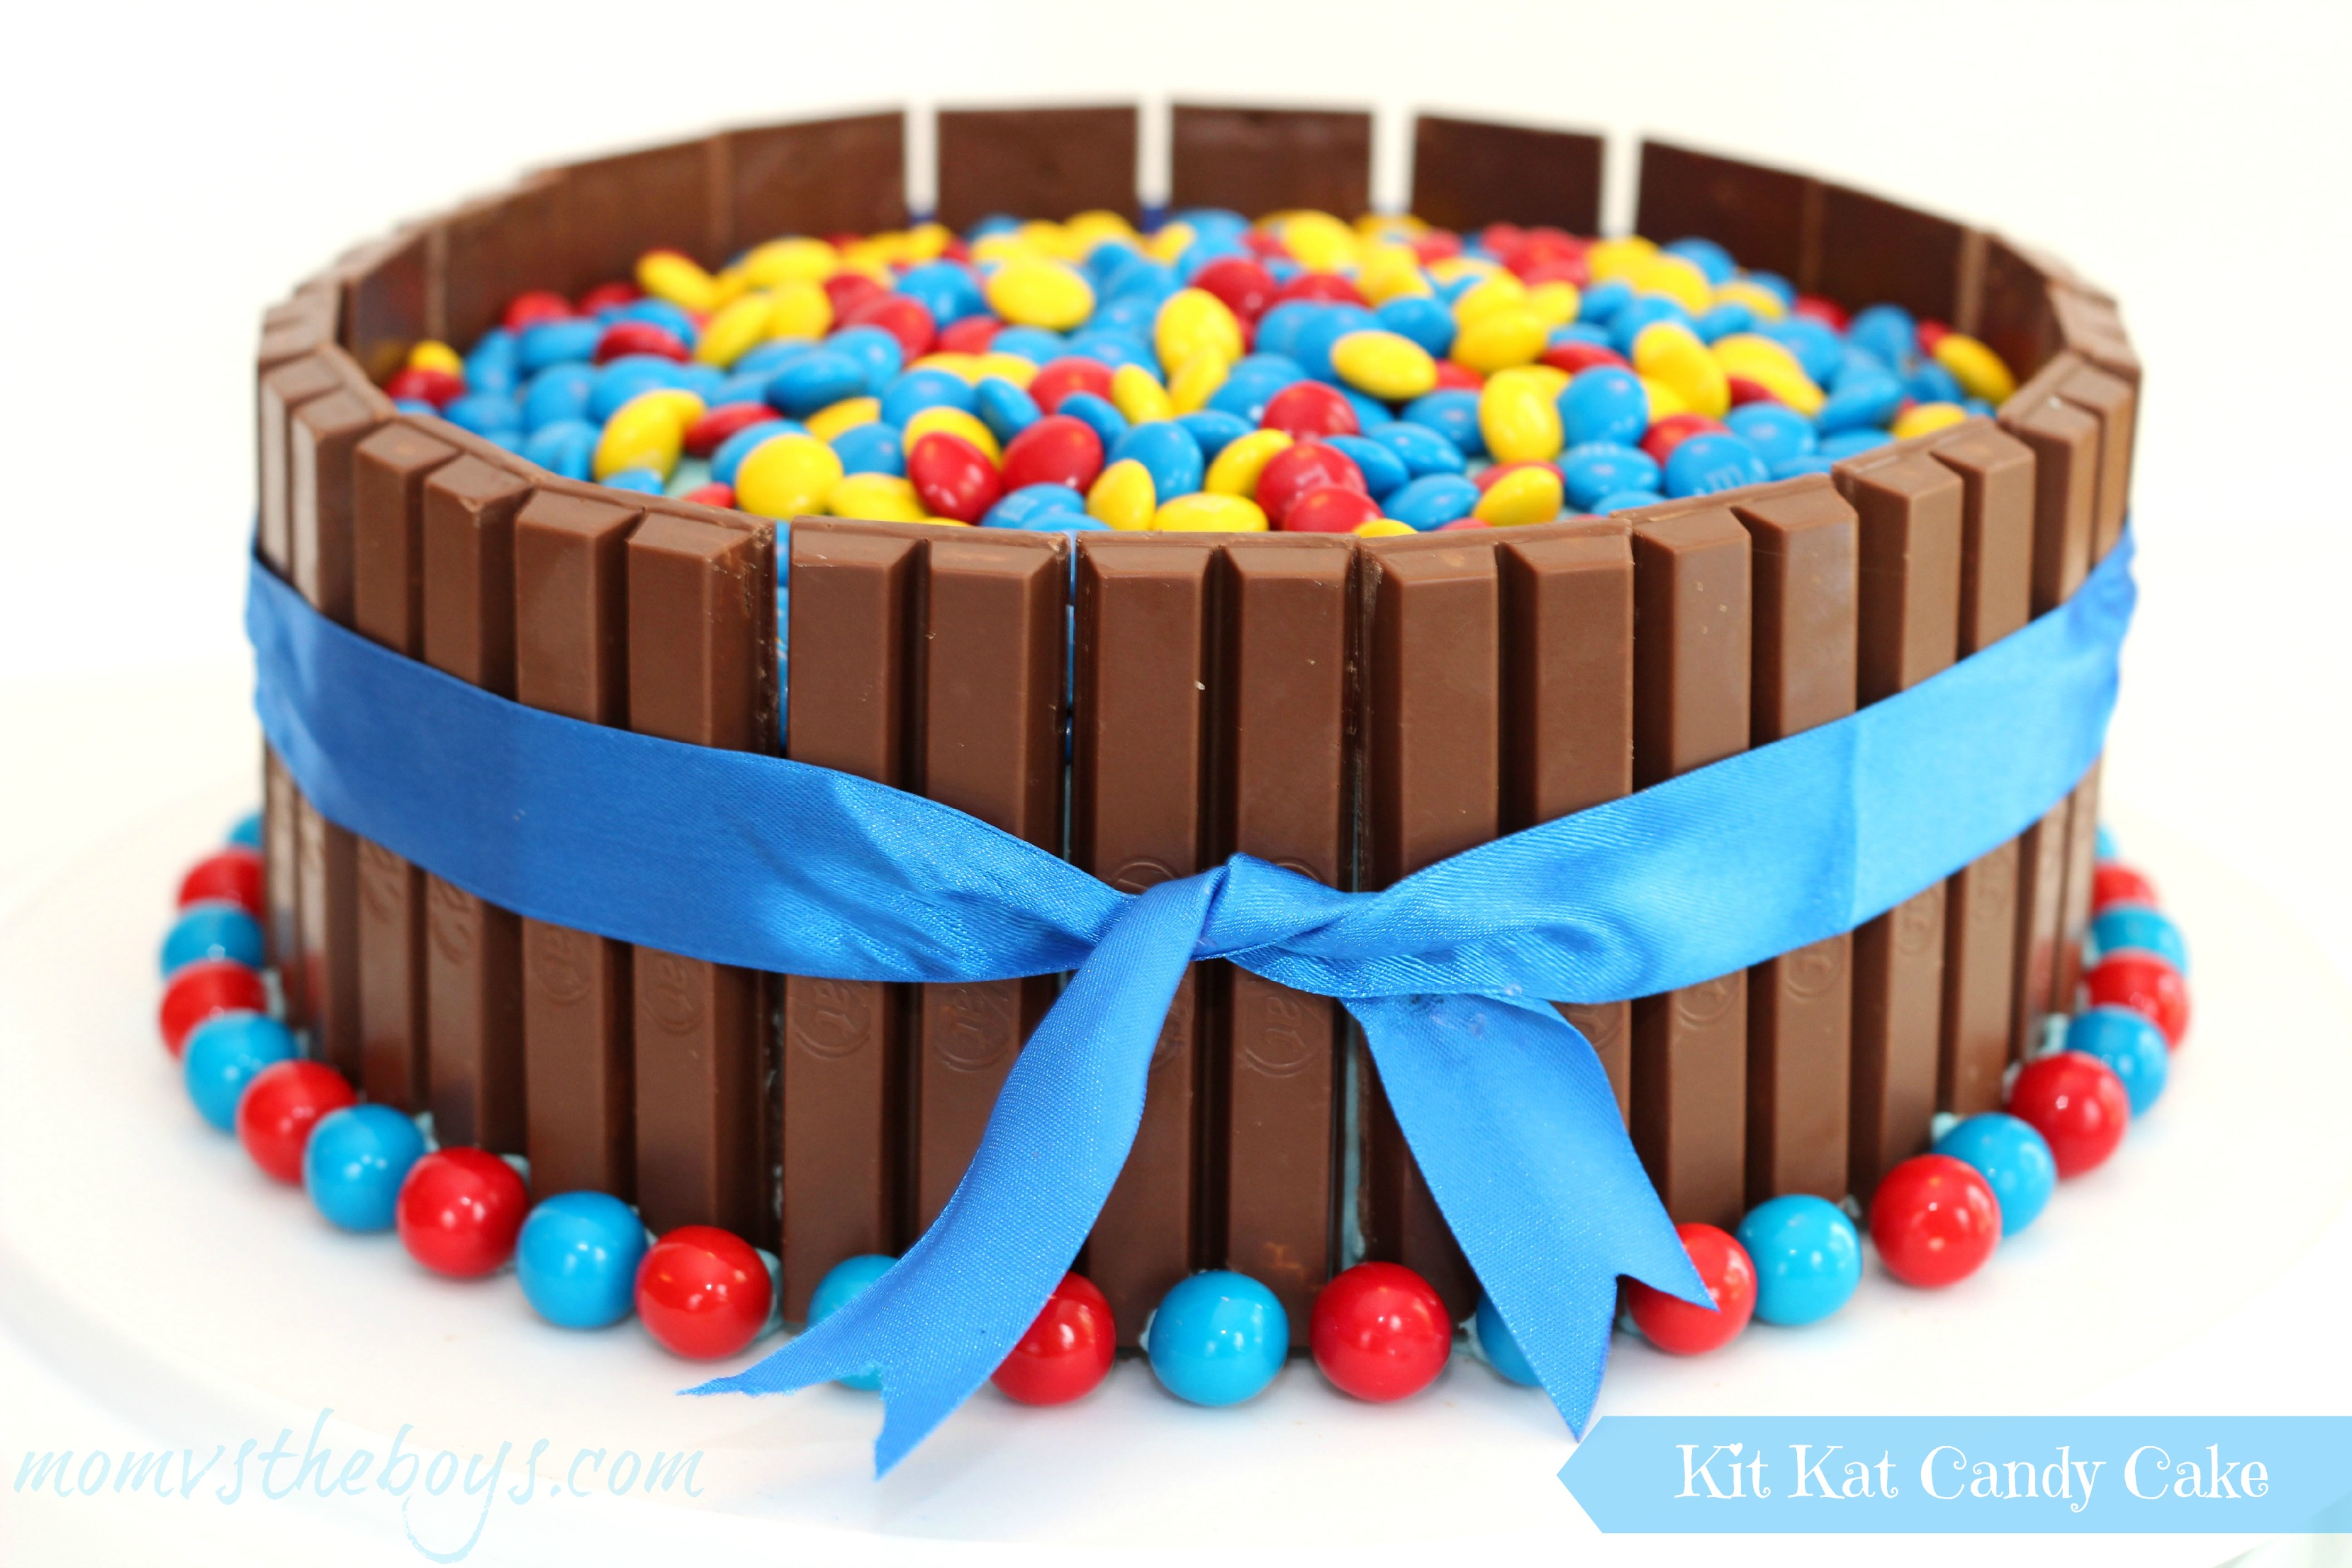 25+ Pretty Photo of Kit Kat Birthday Cake